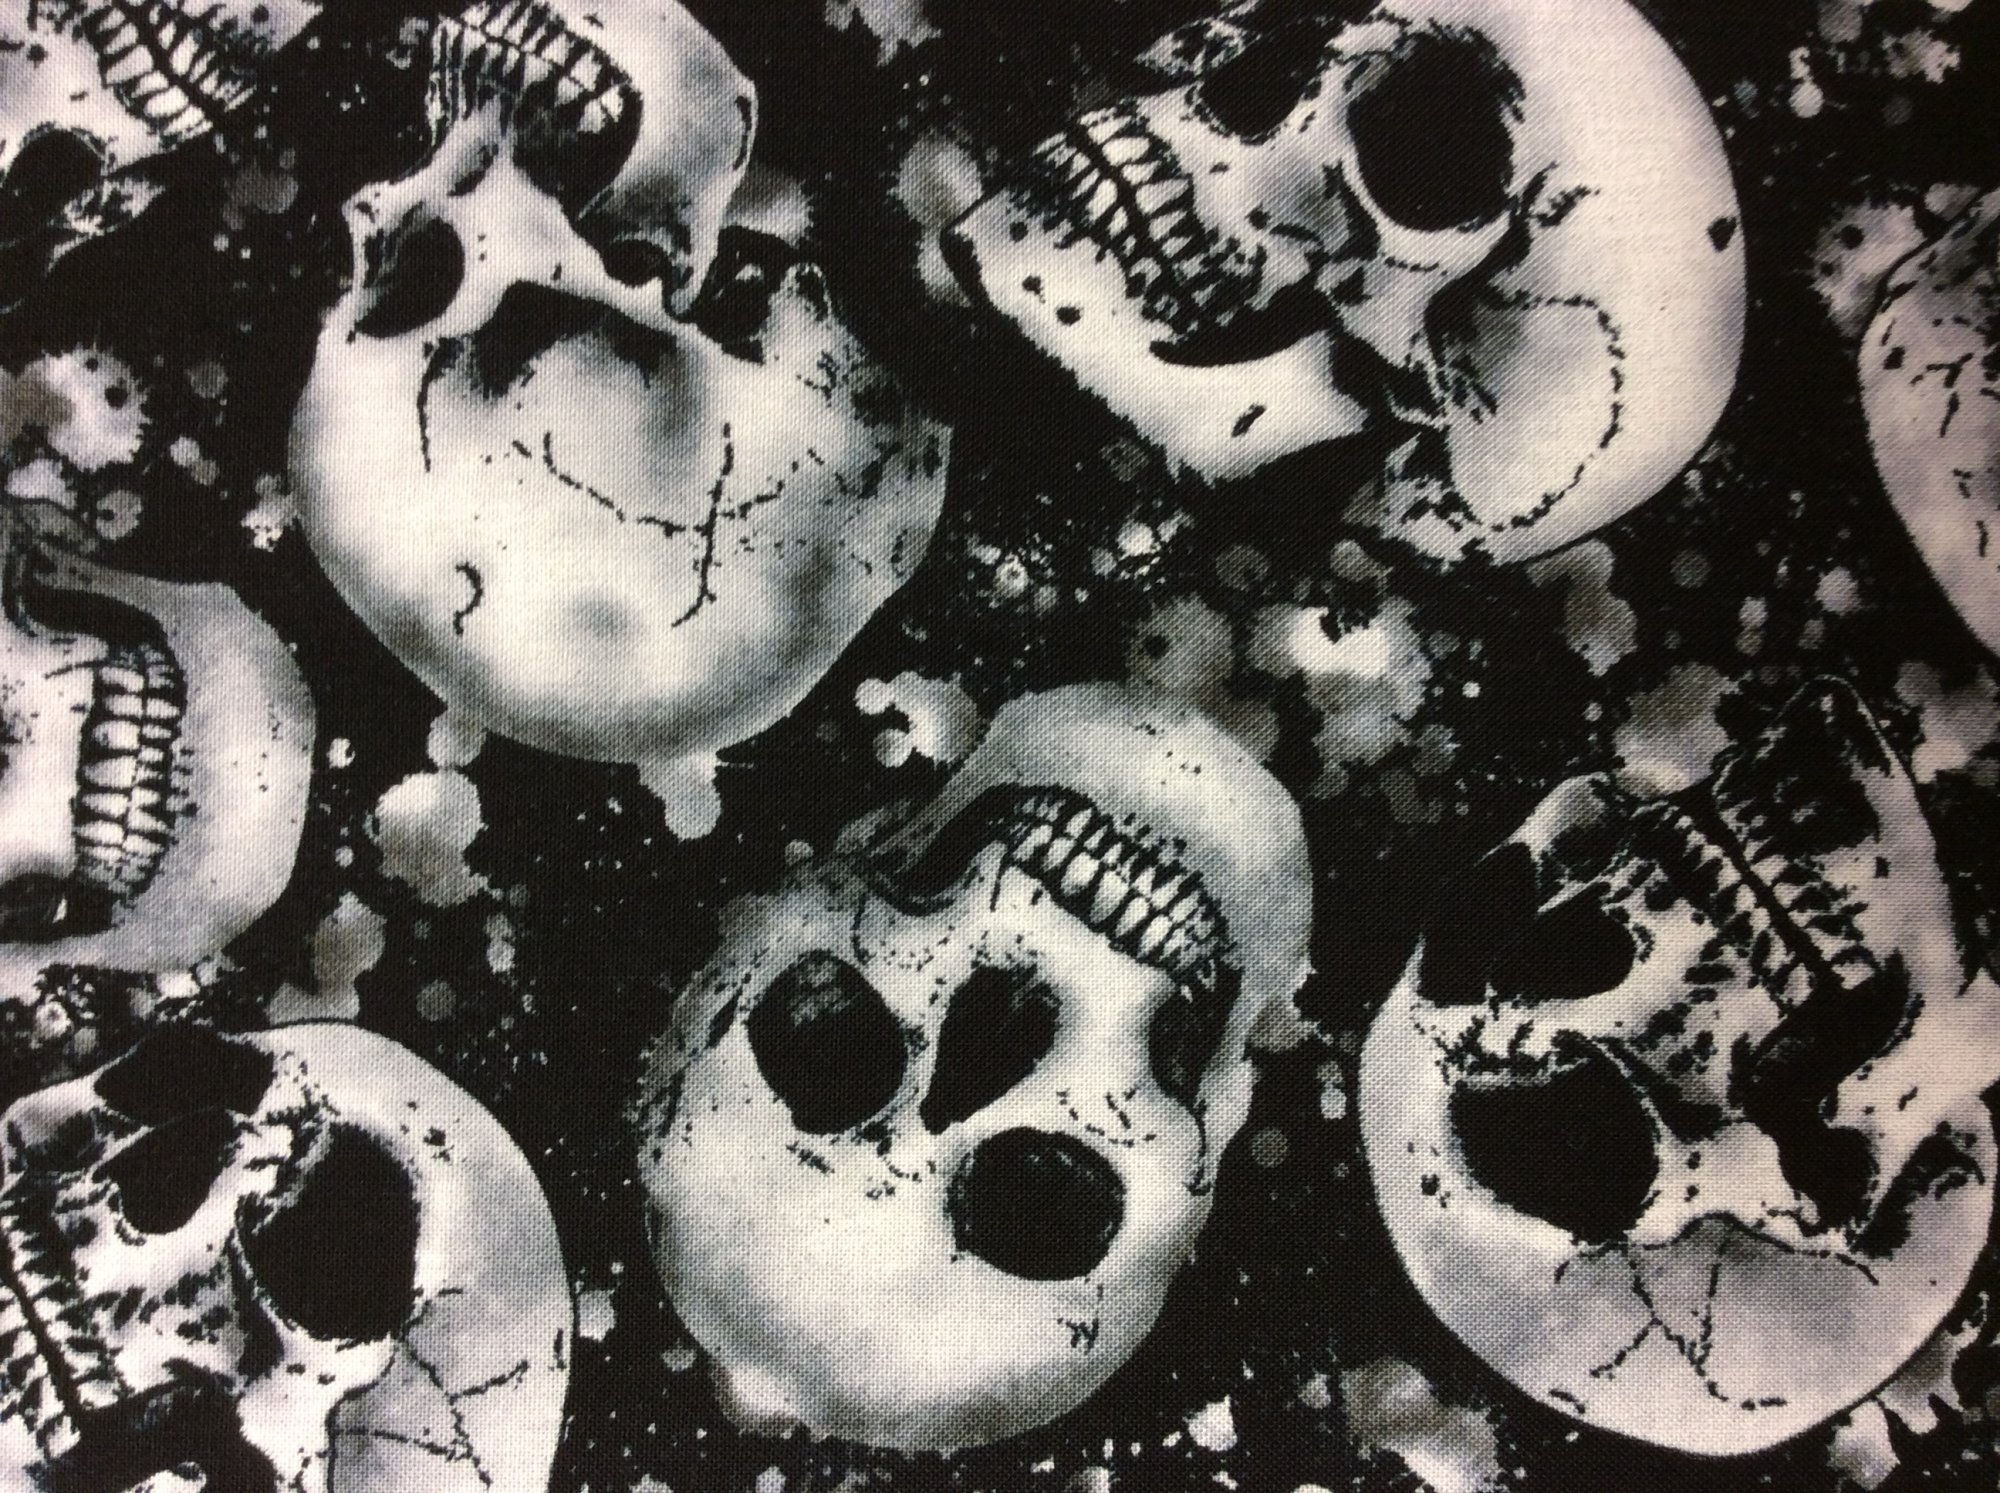 Uncategorized Scary Halloween Skulls goth horror skull blood scary halloween creep scream zombie dead cotton quilt fabric tt68